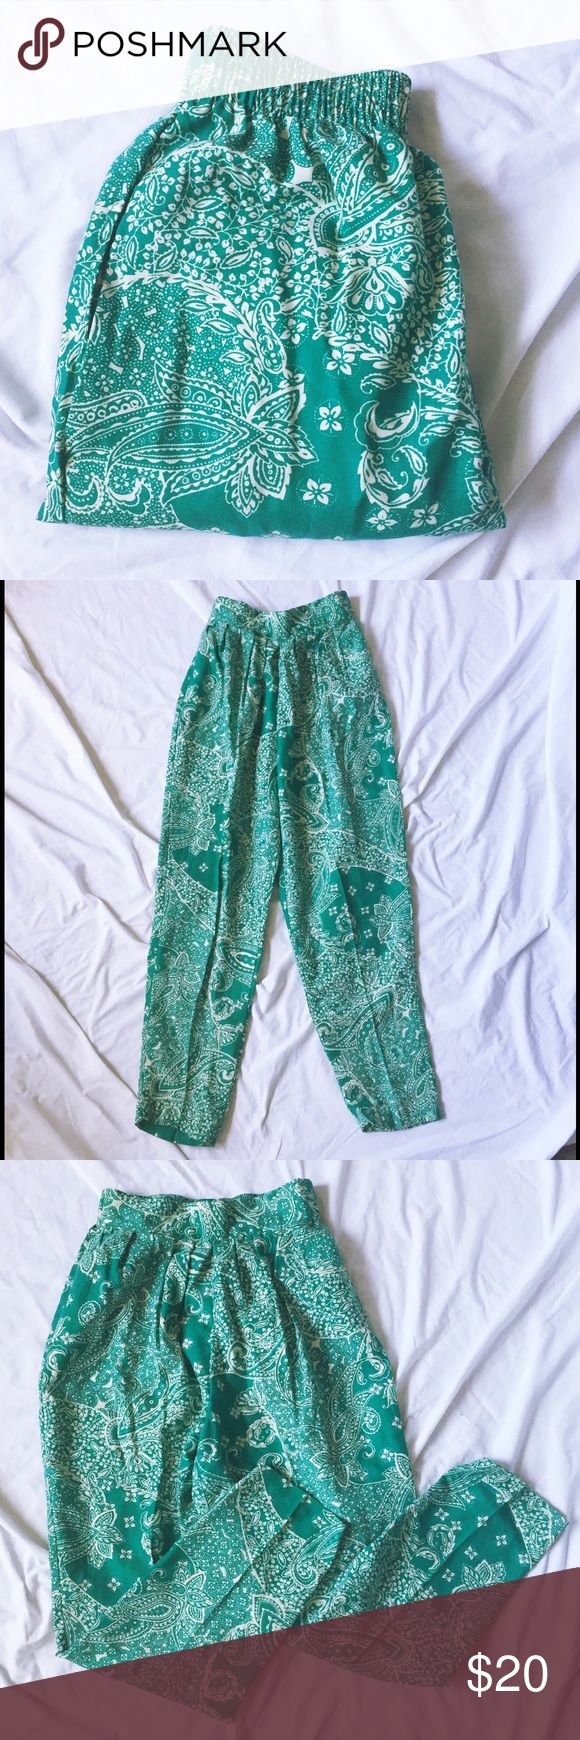 "VINTAGE High Waisted Trousers High Waisted Green Bandana Print Trousers • Women's size Medium • Length 40"" • Inseam 25"" • Rise 14"" • cute print - love these !! • same / next day shipping 💌 Pants Trousers"